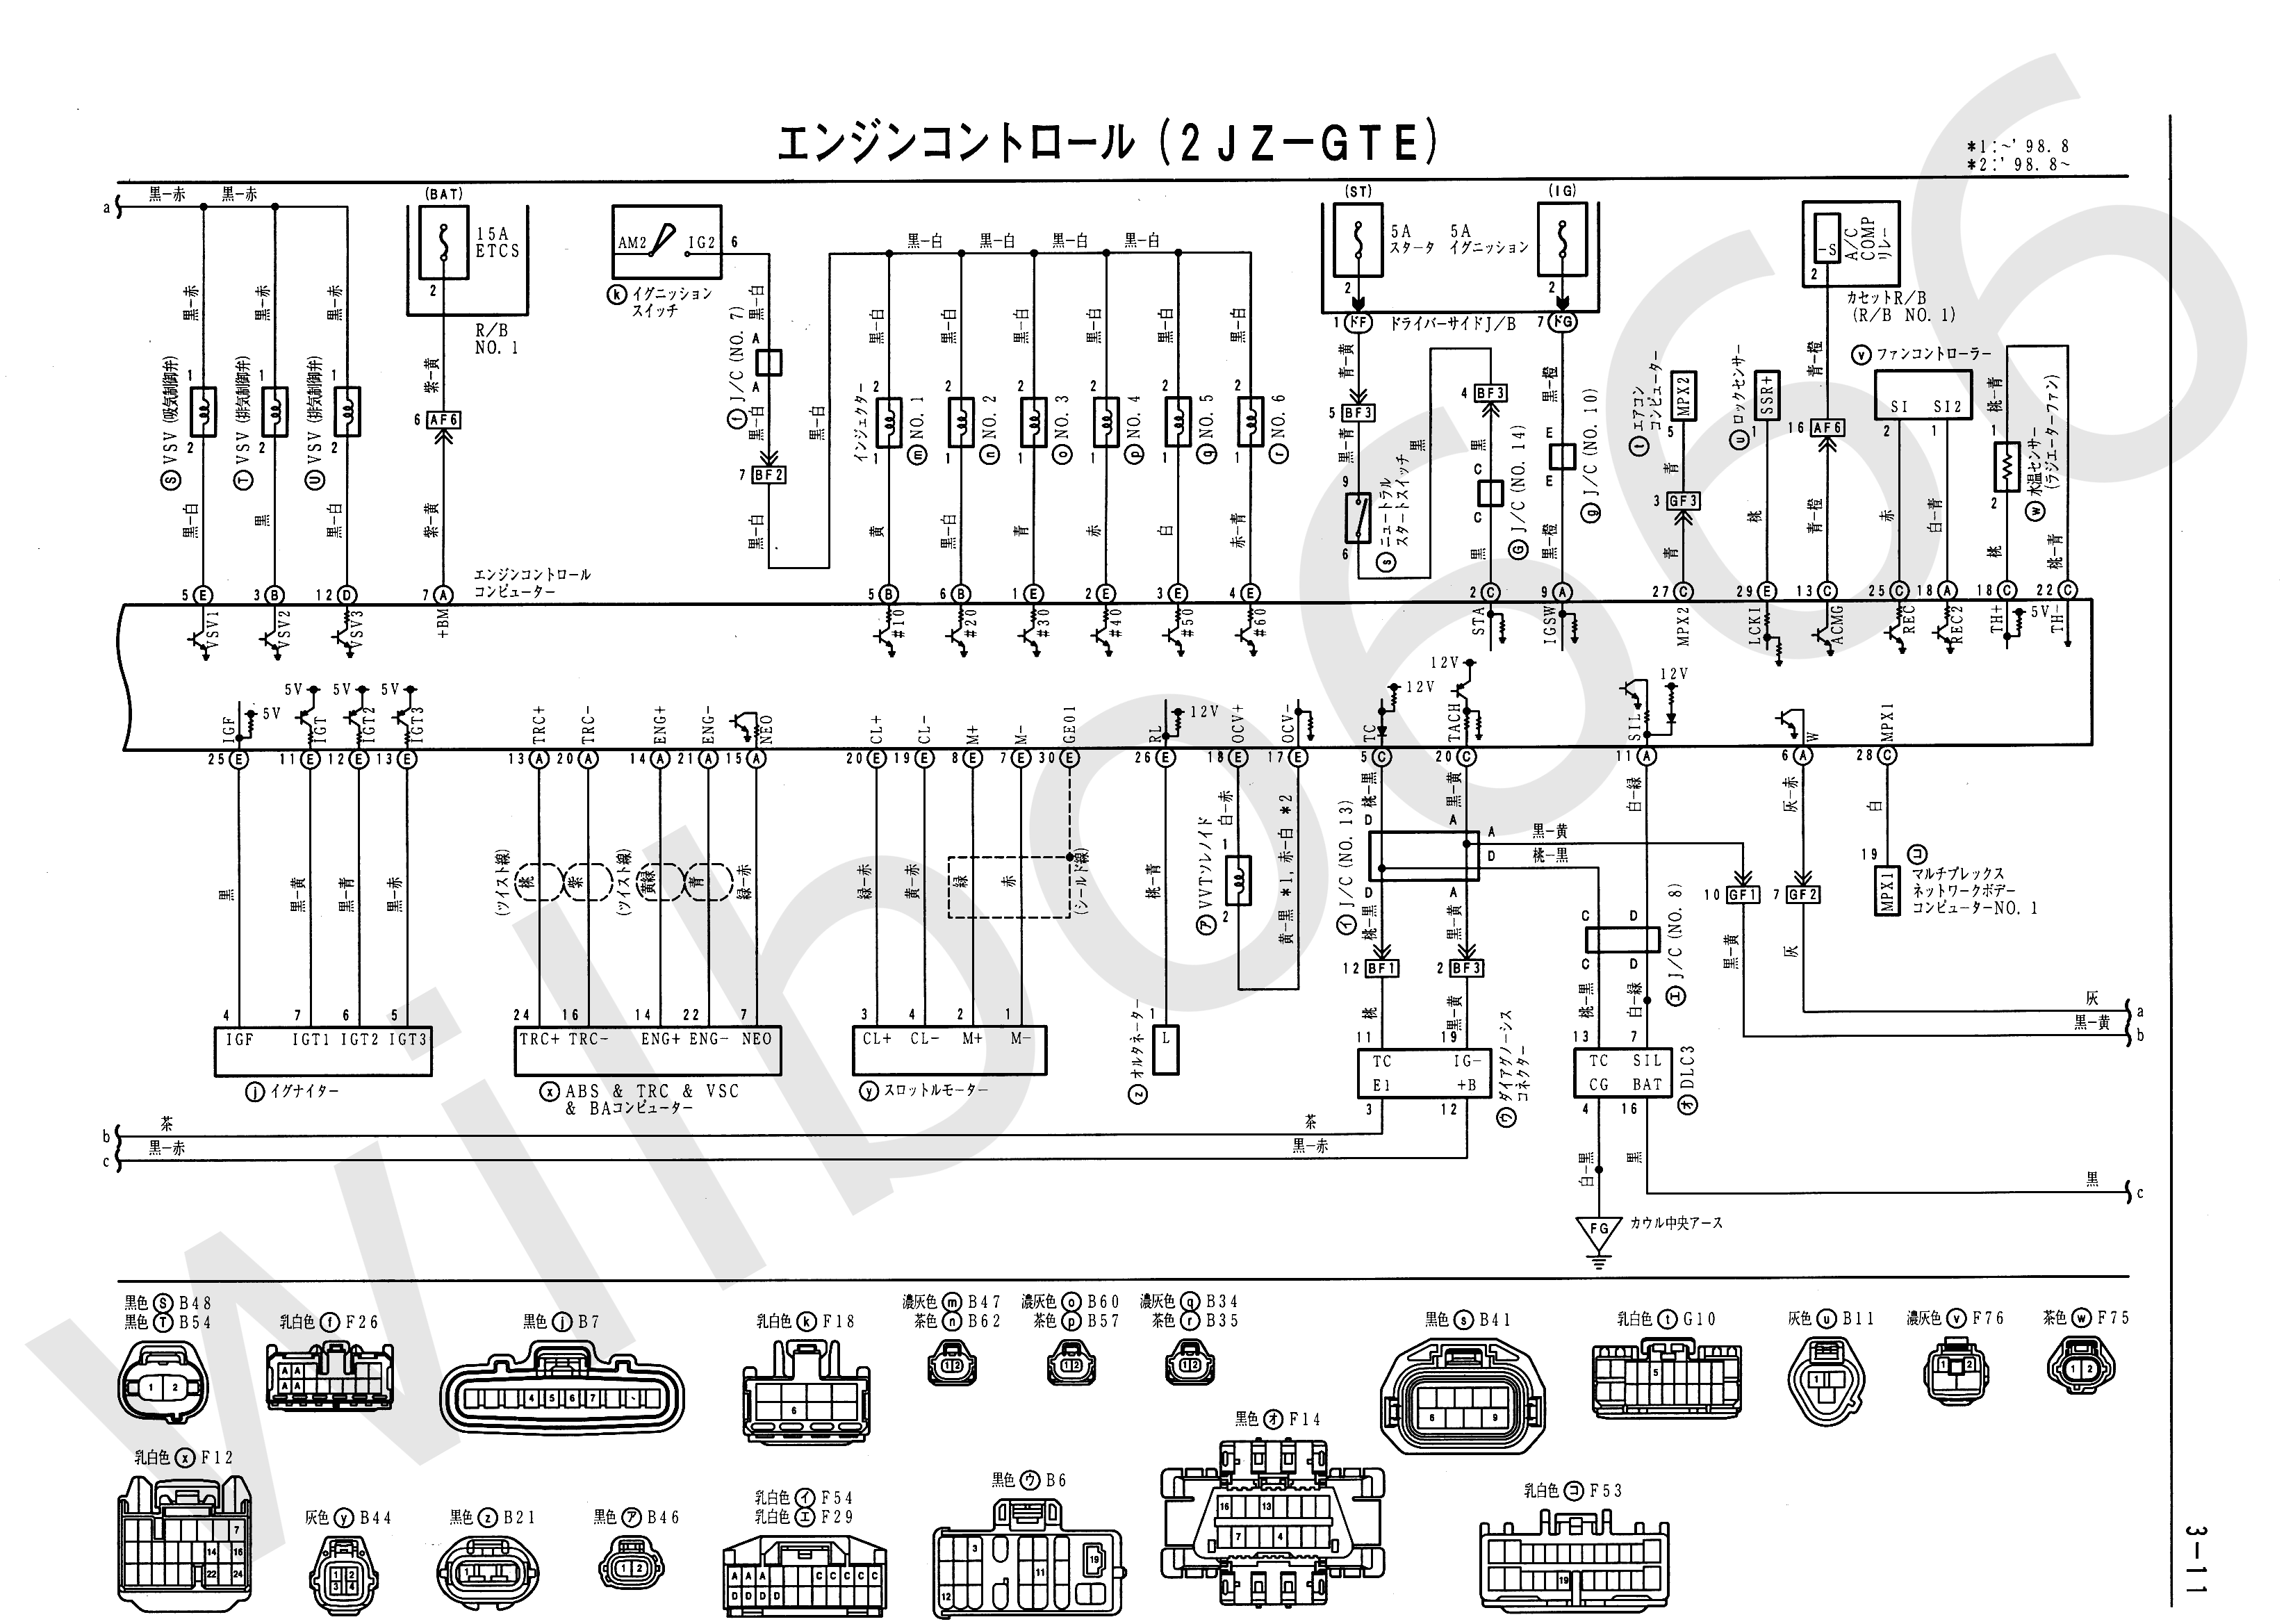 JZS161 Electrical Wiring Diagram 6748505 3 11 toyota vvti wiring diagram toyota wiring diagrams instruction ke70 wiring diagram pdf at bakdesigns.co